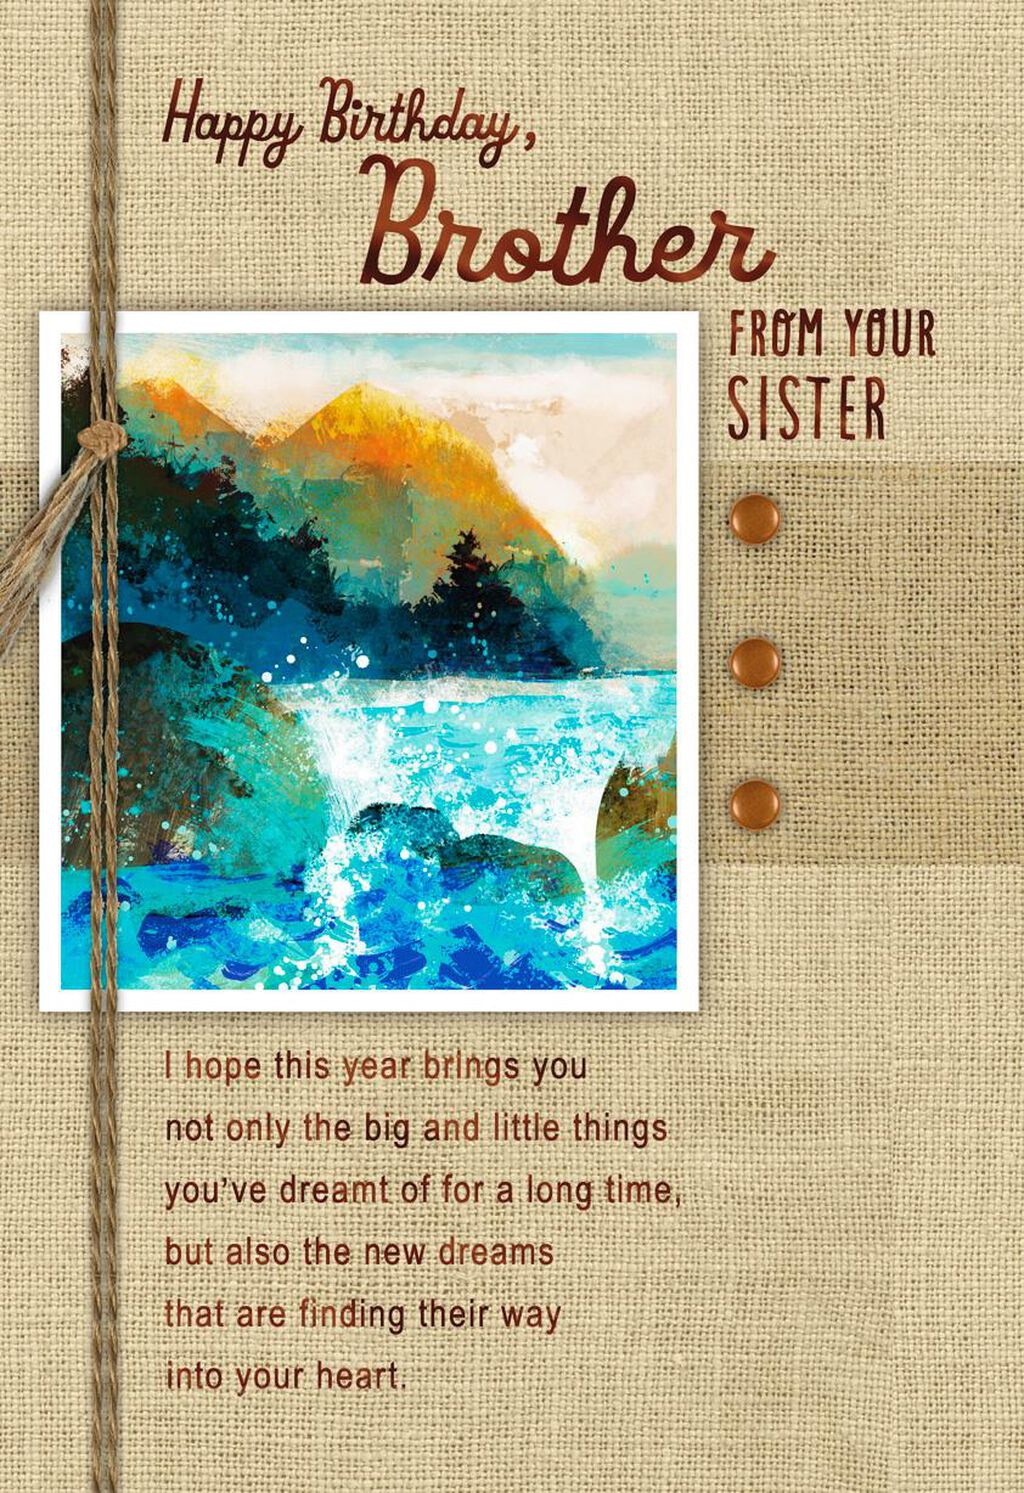 Everything You Wish Birthday Card for Brother From Sister - Greeting ...